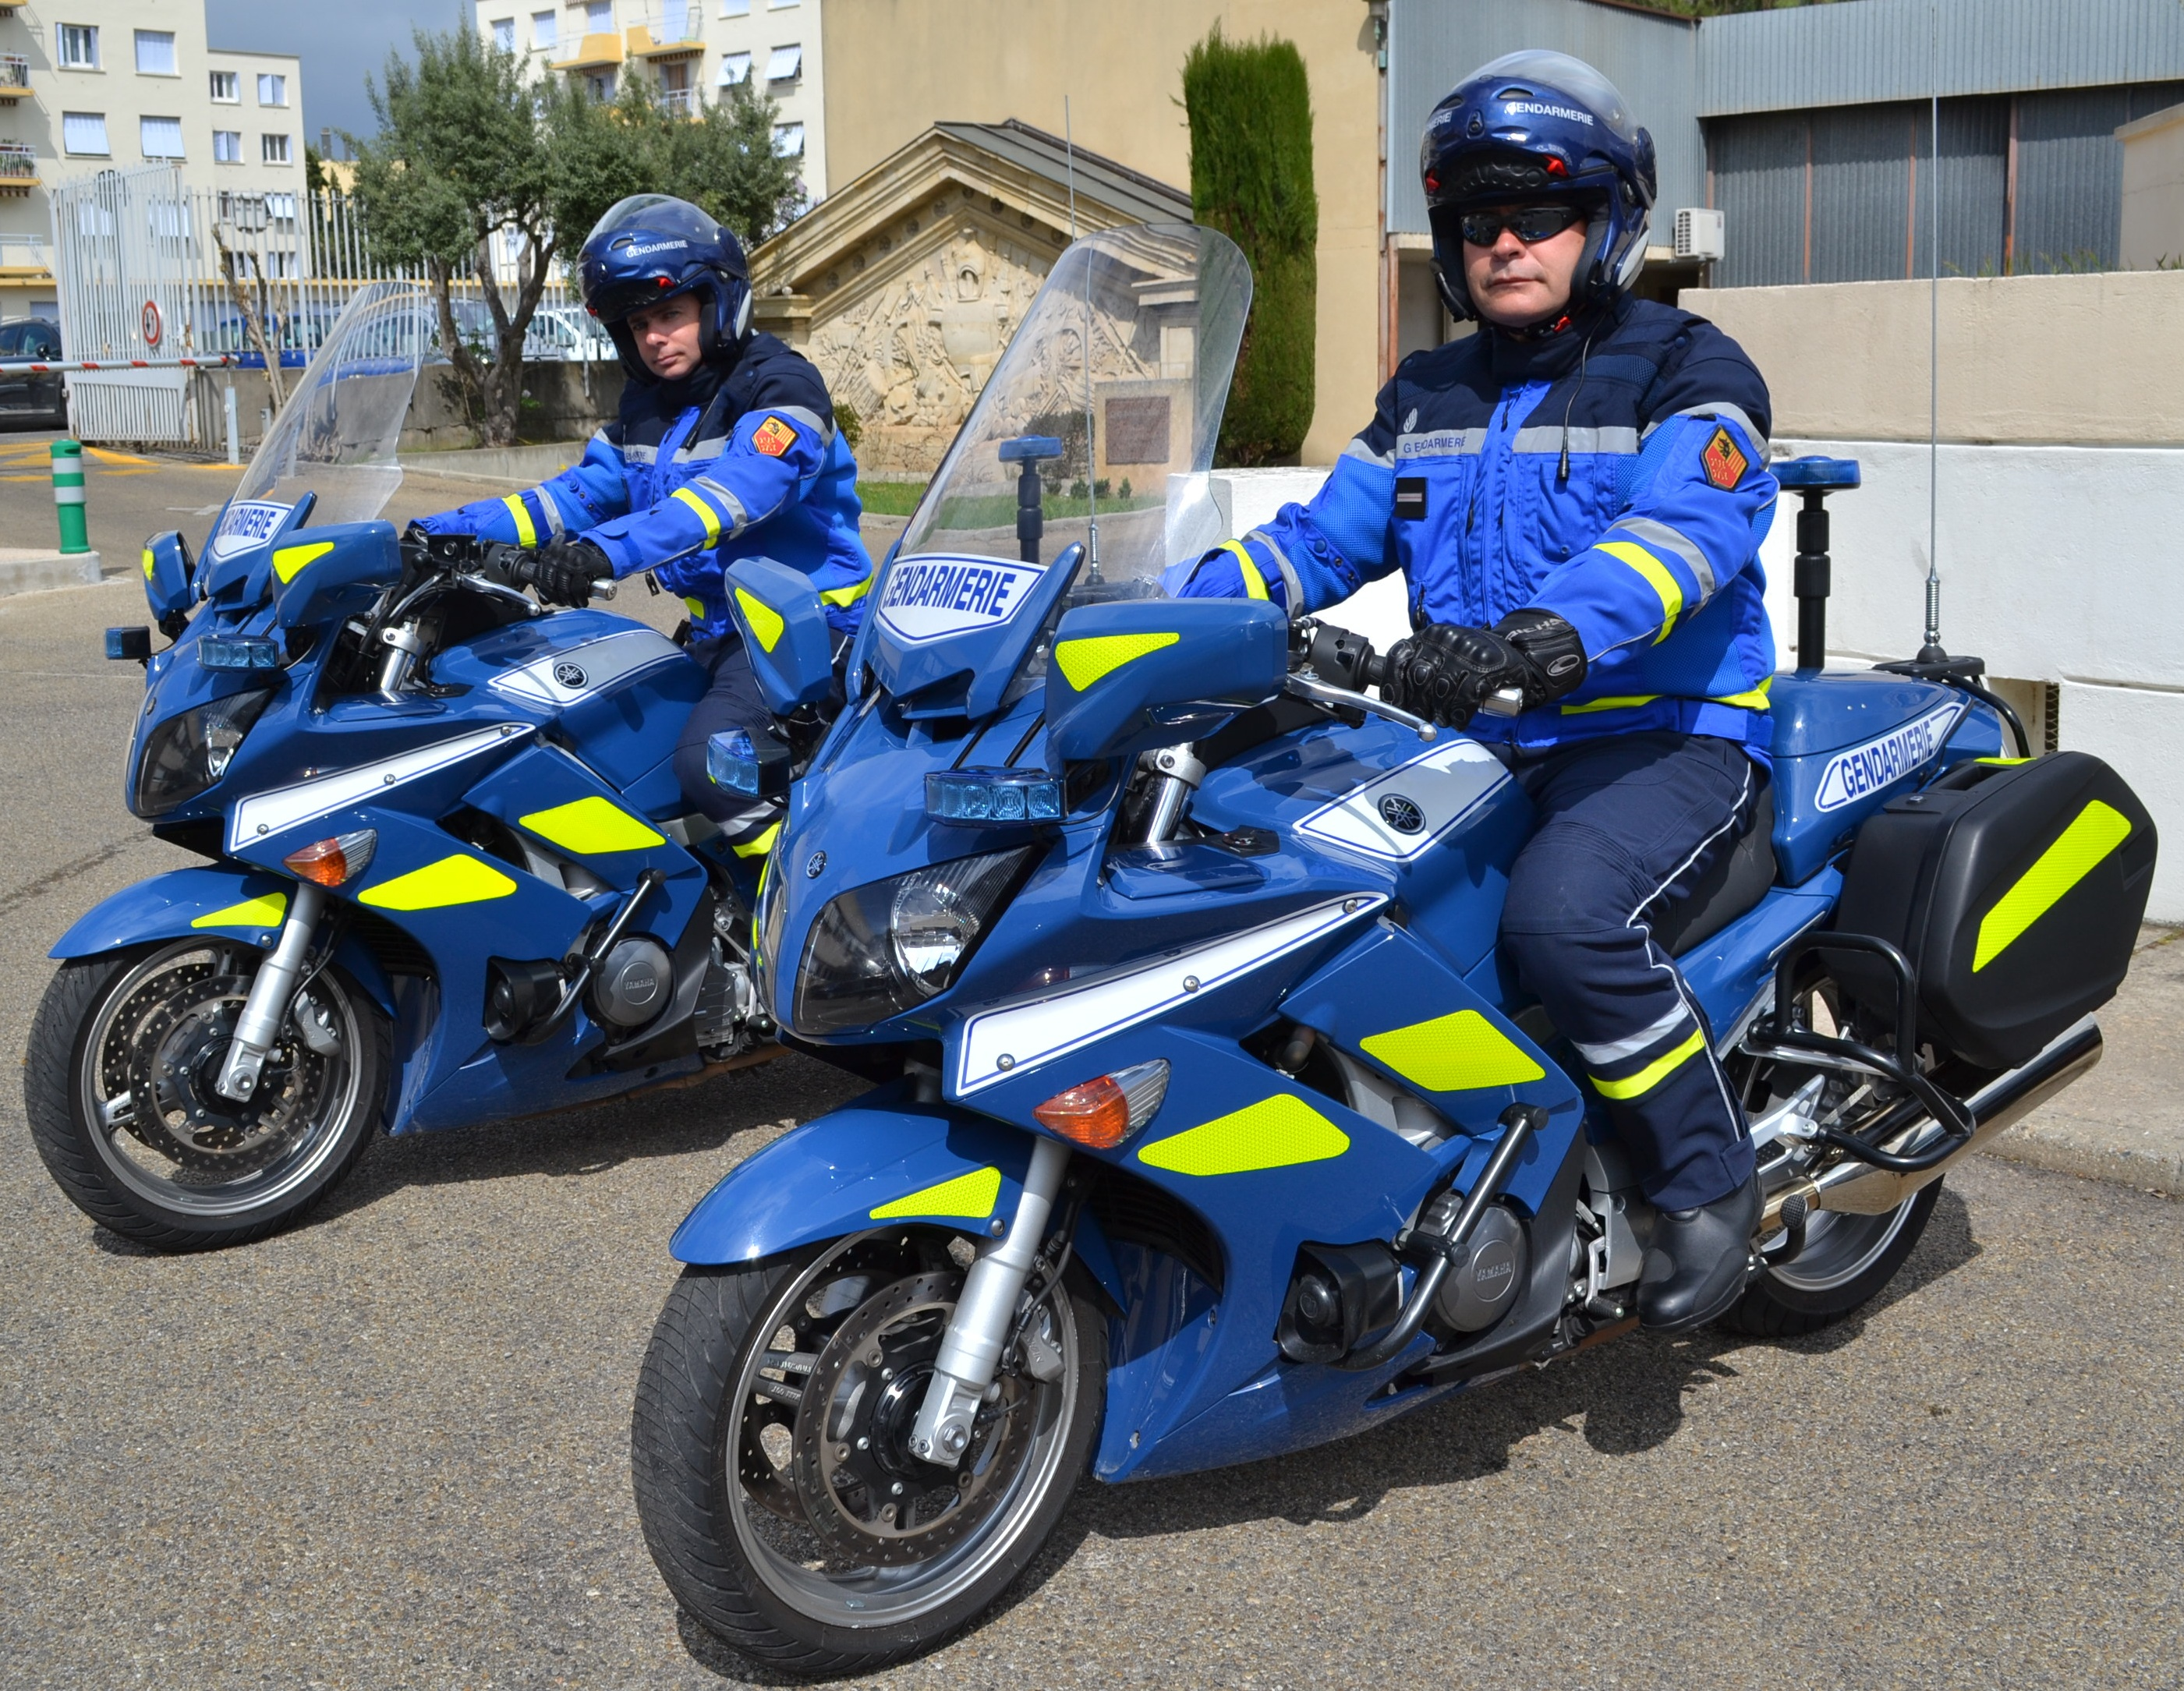 gendarmerie les motards gardois changent de tenue objectif gard. Black Bedroom Furniture Sets. Home Design Ideas